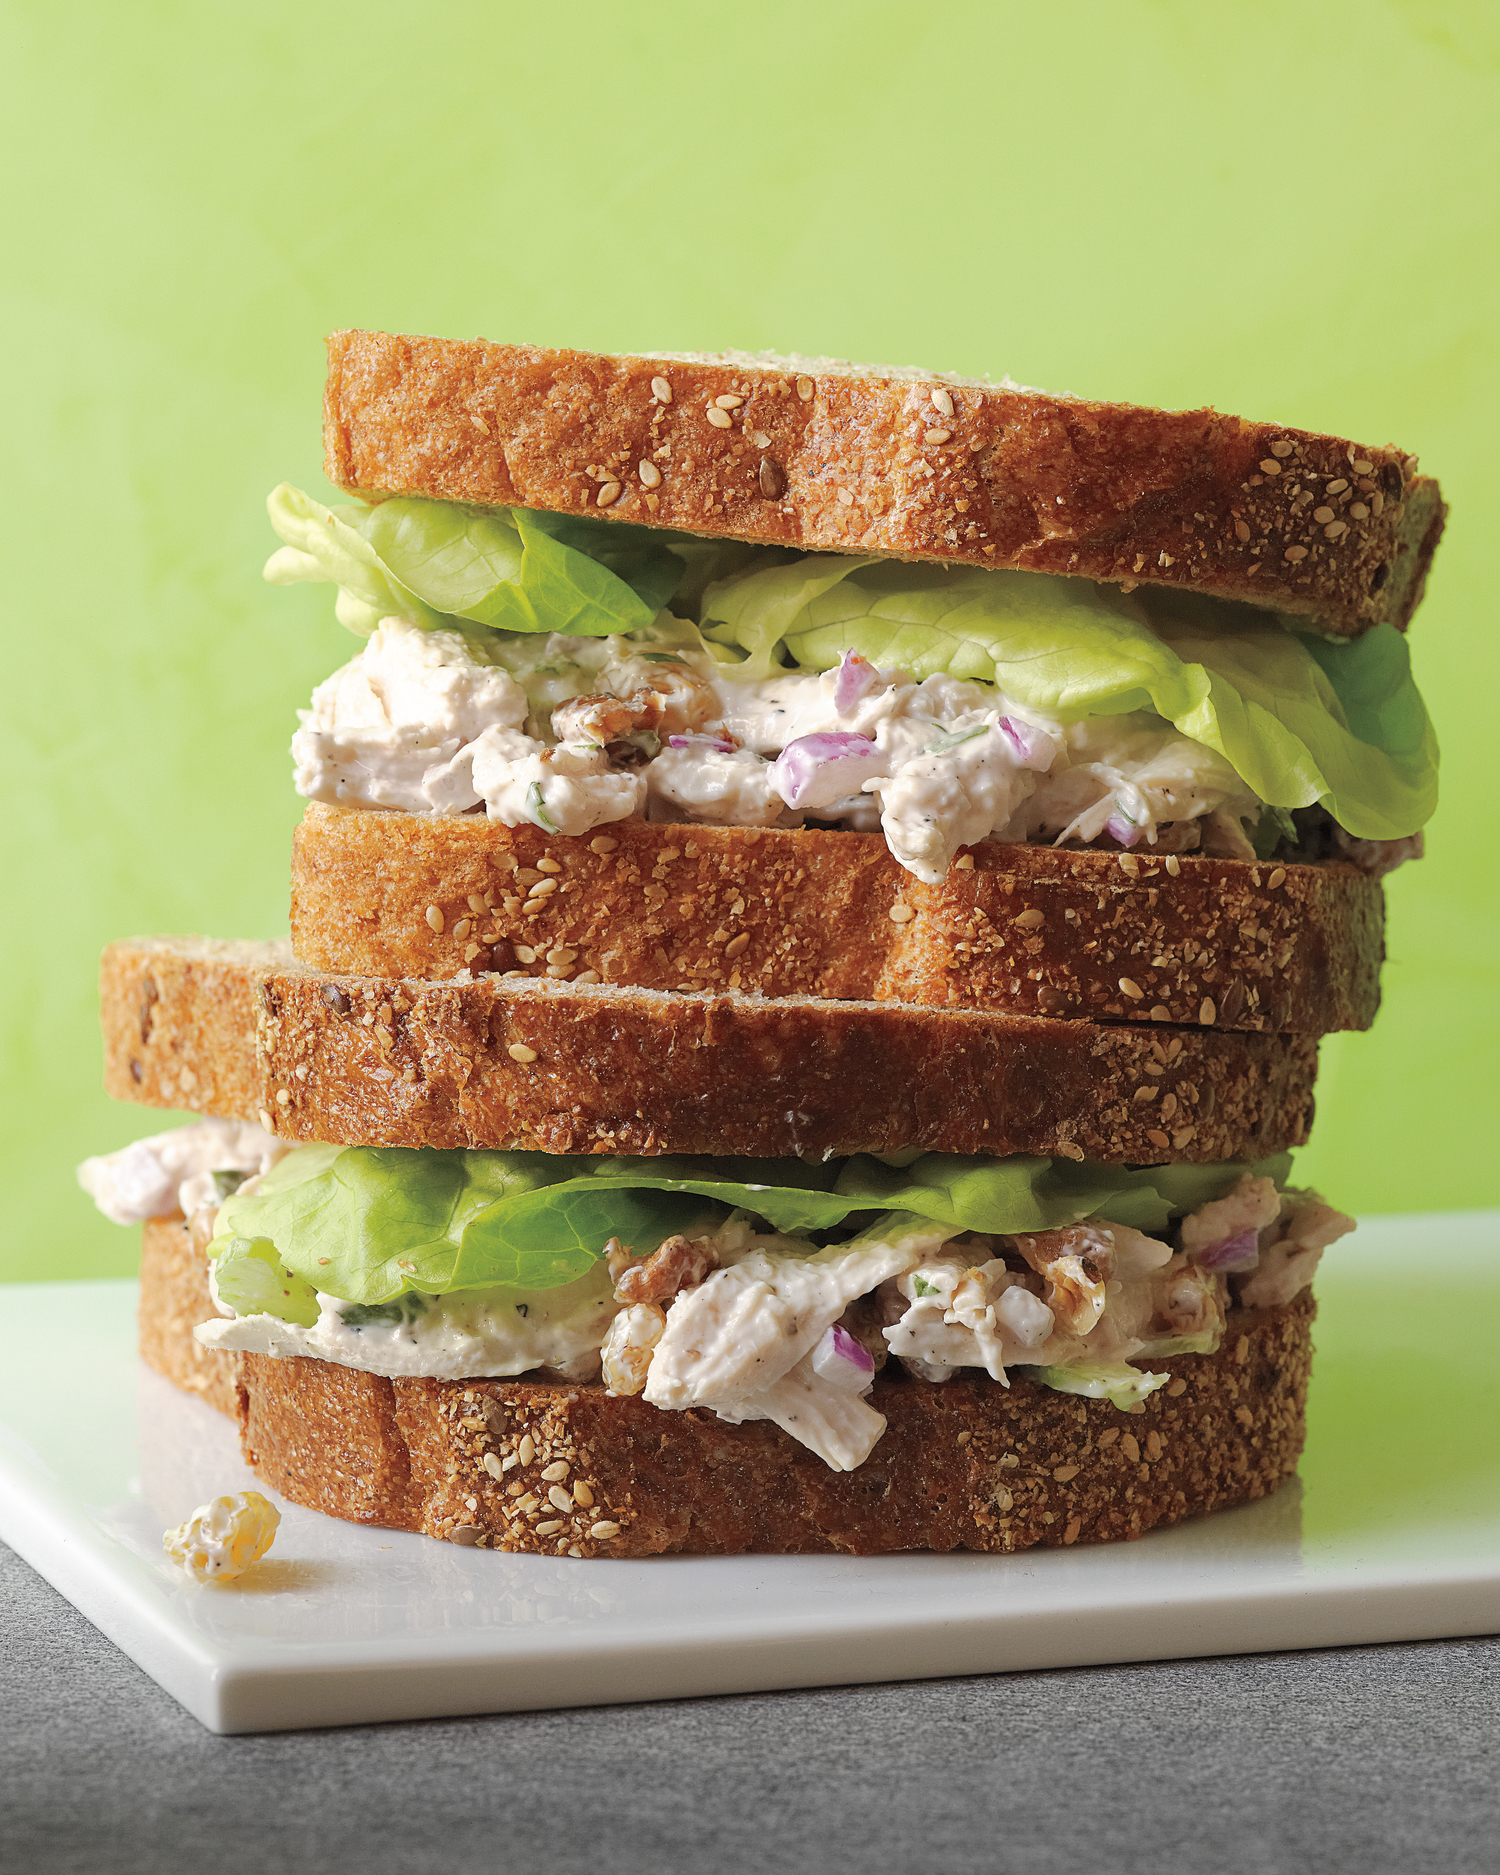 poached-chicken-salad-sandwiches-med108164.jpg